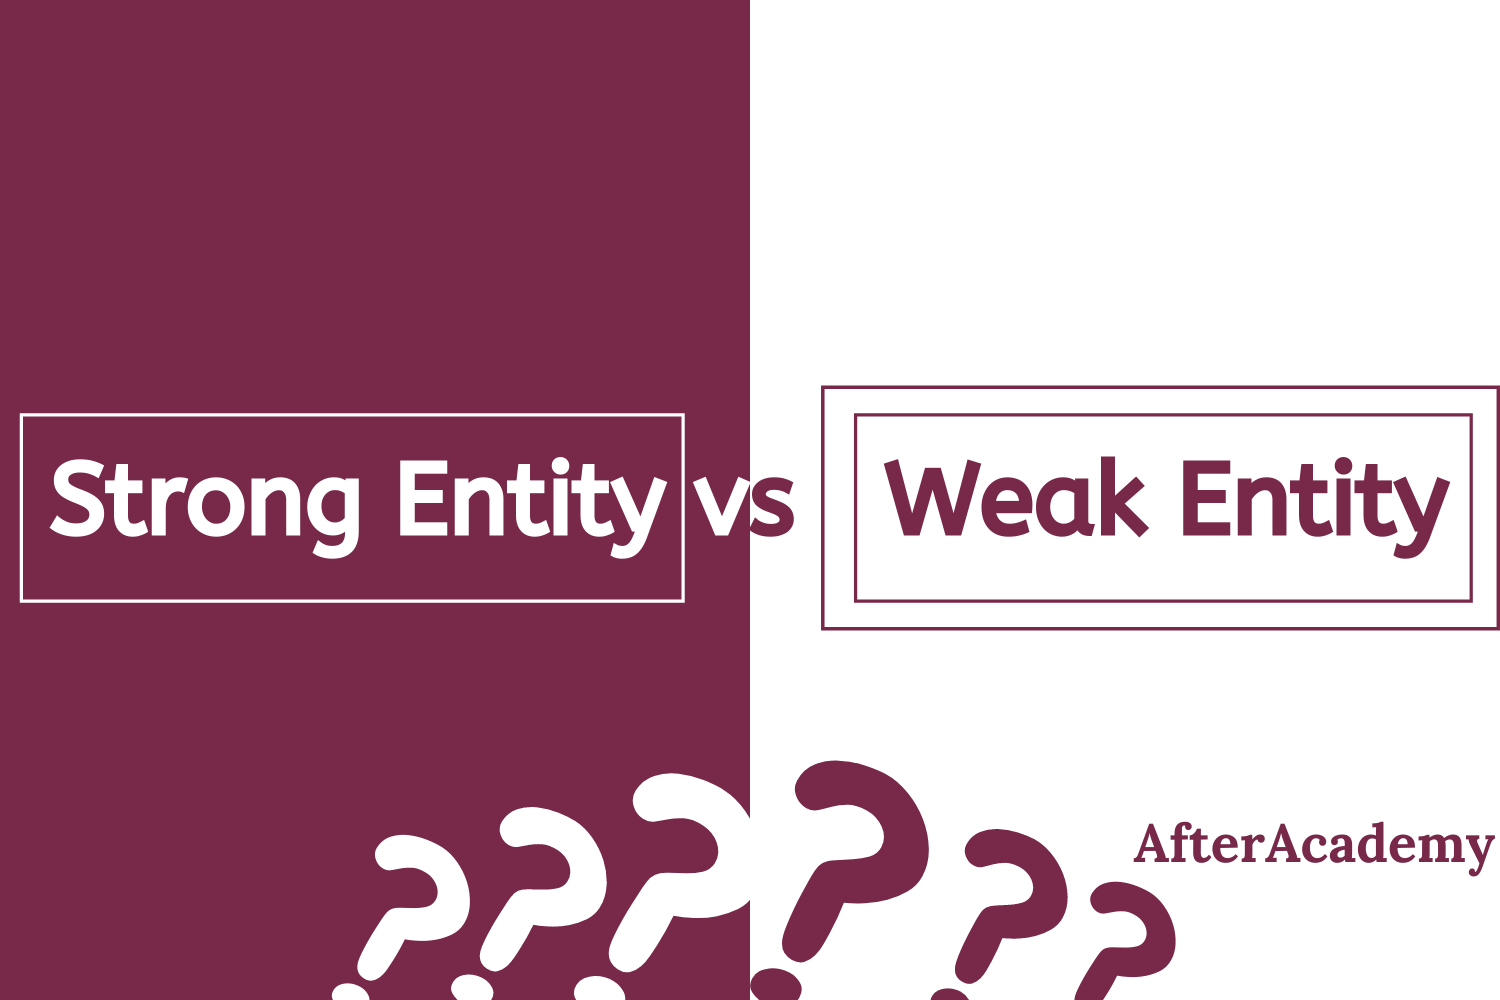 Differentiate between Weak and Strong entity